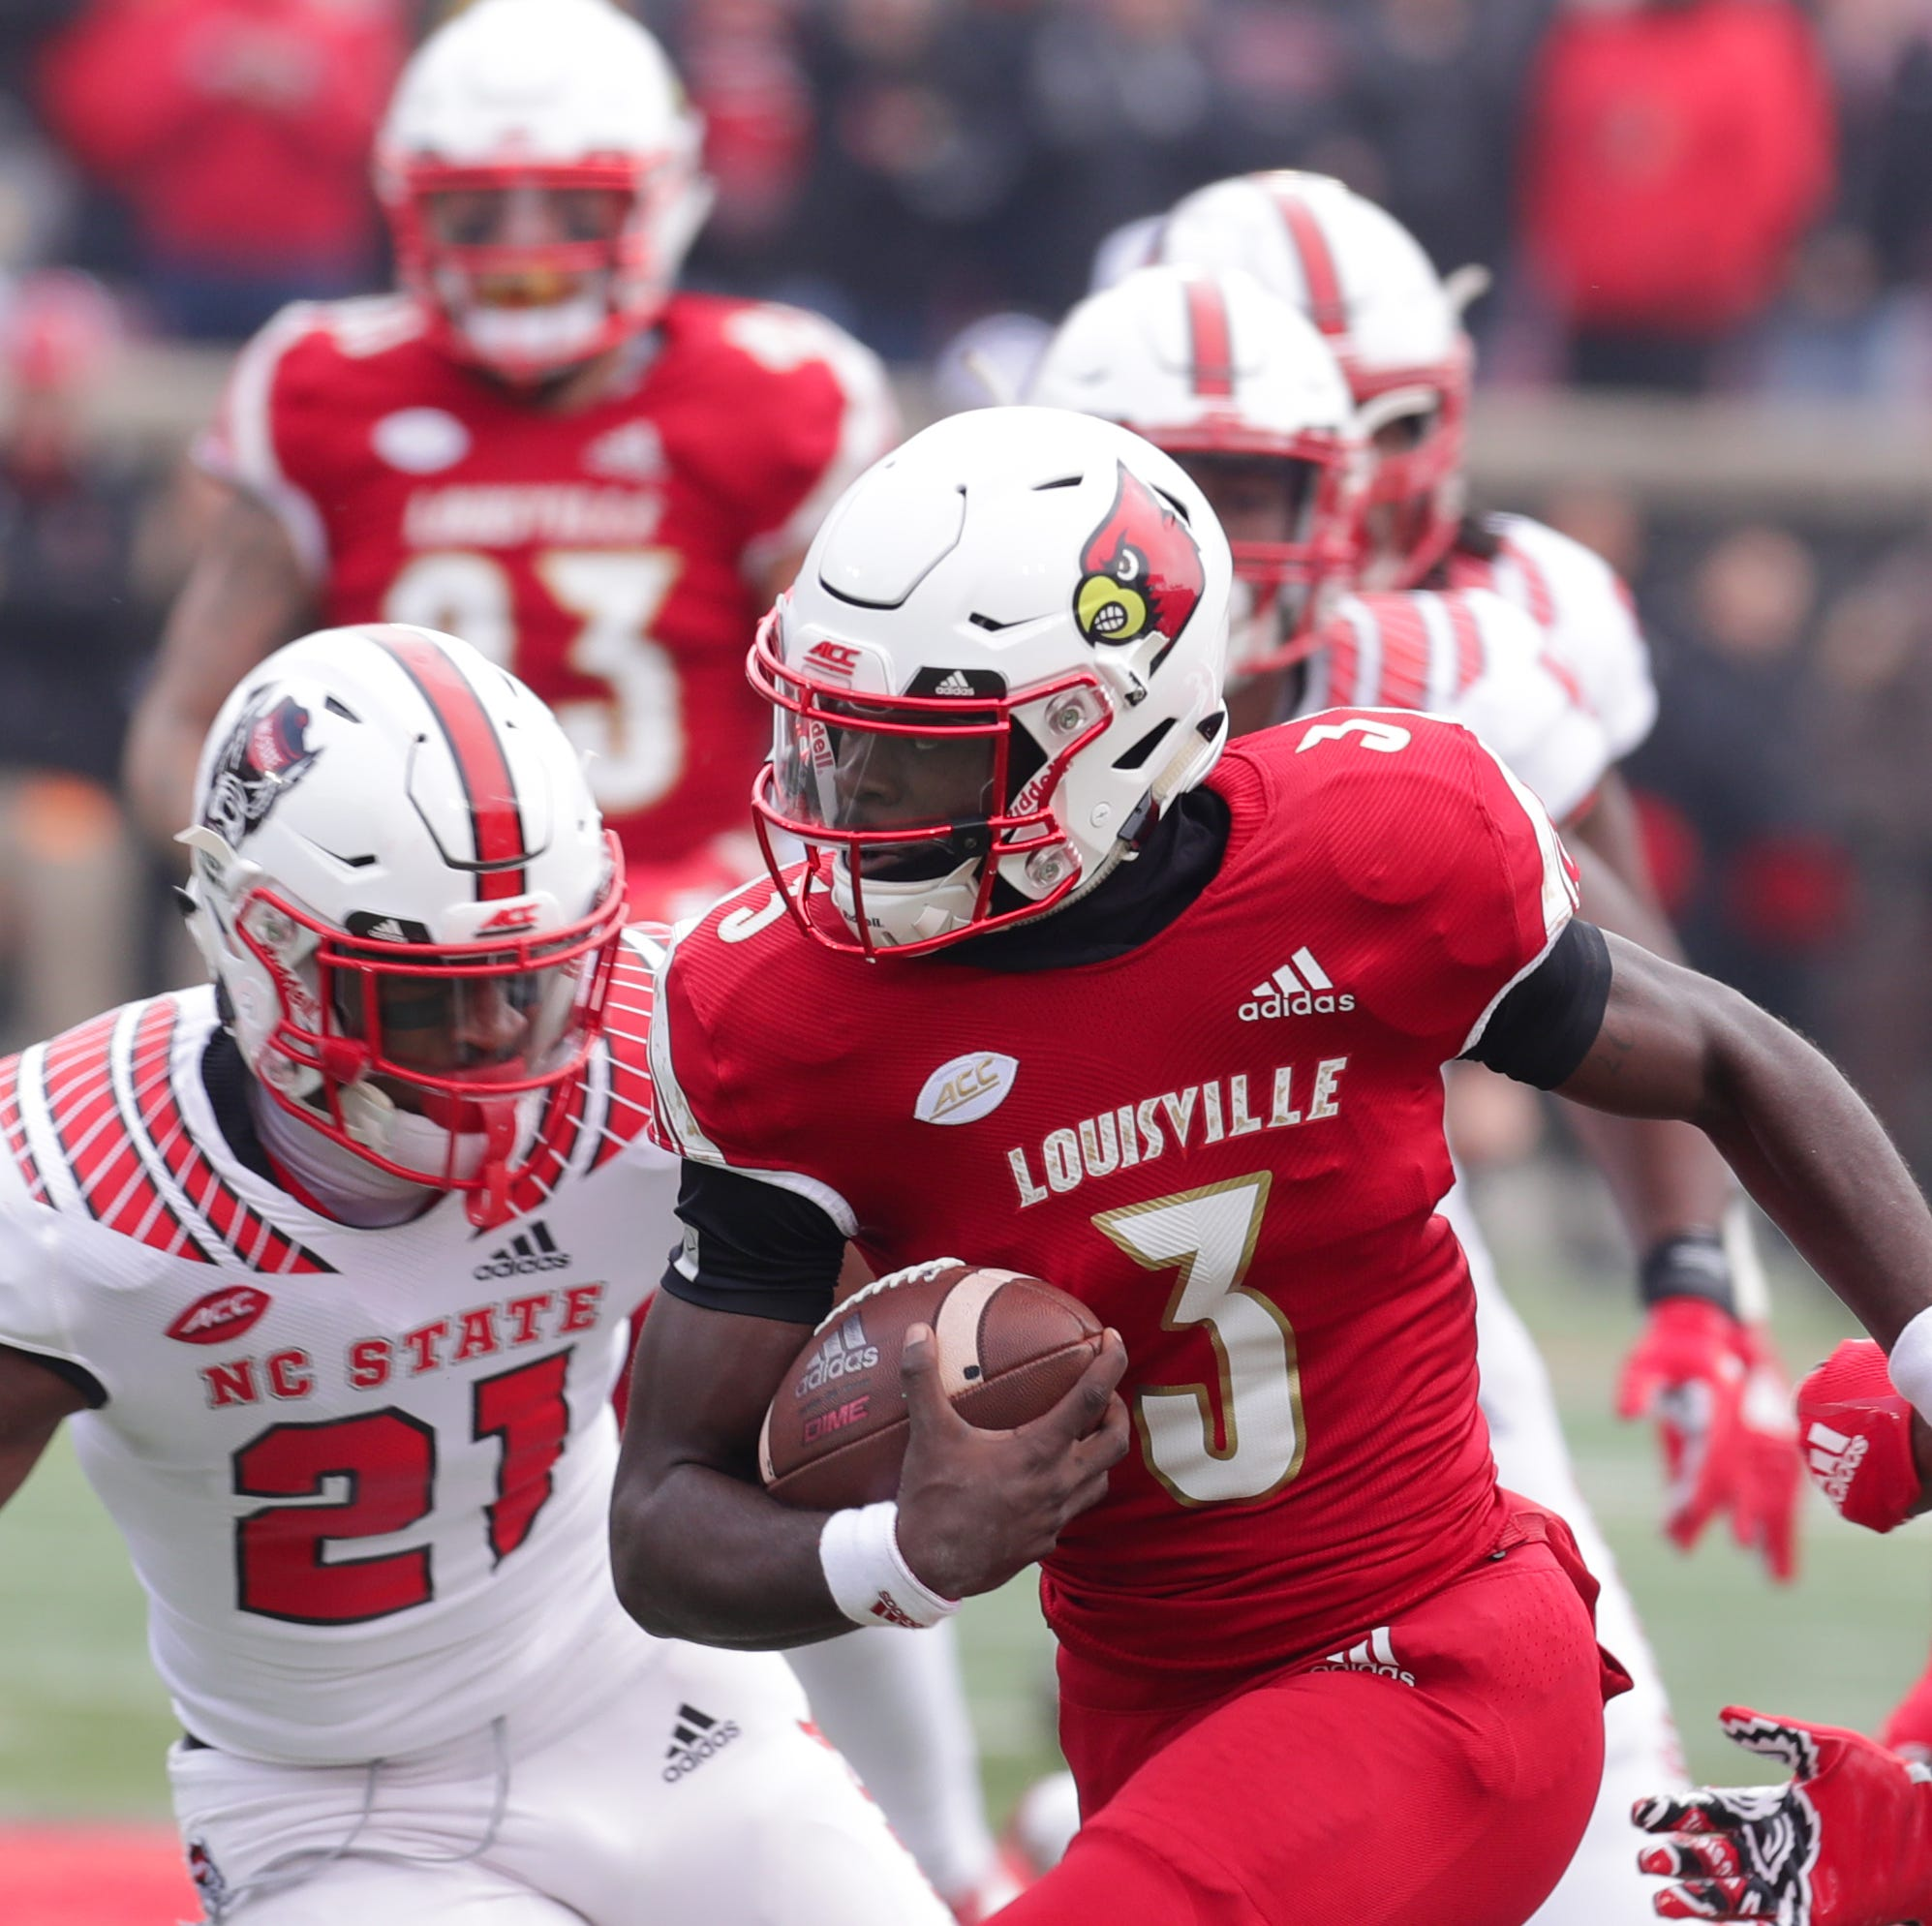 Louisville football's 2-quarterback strategy backfires against NC State